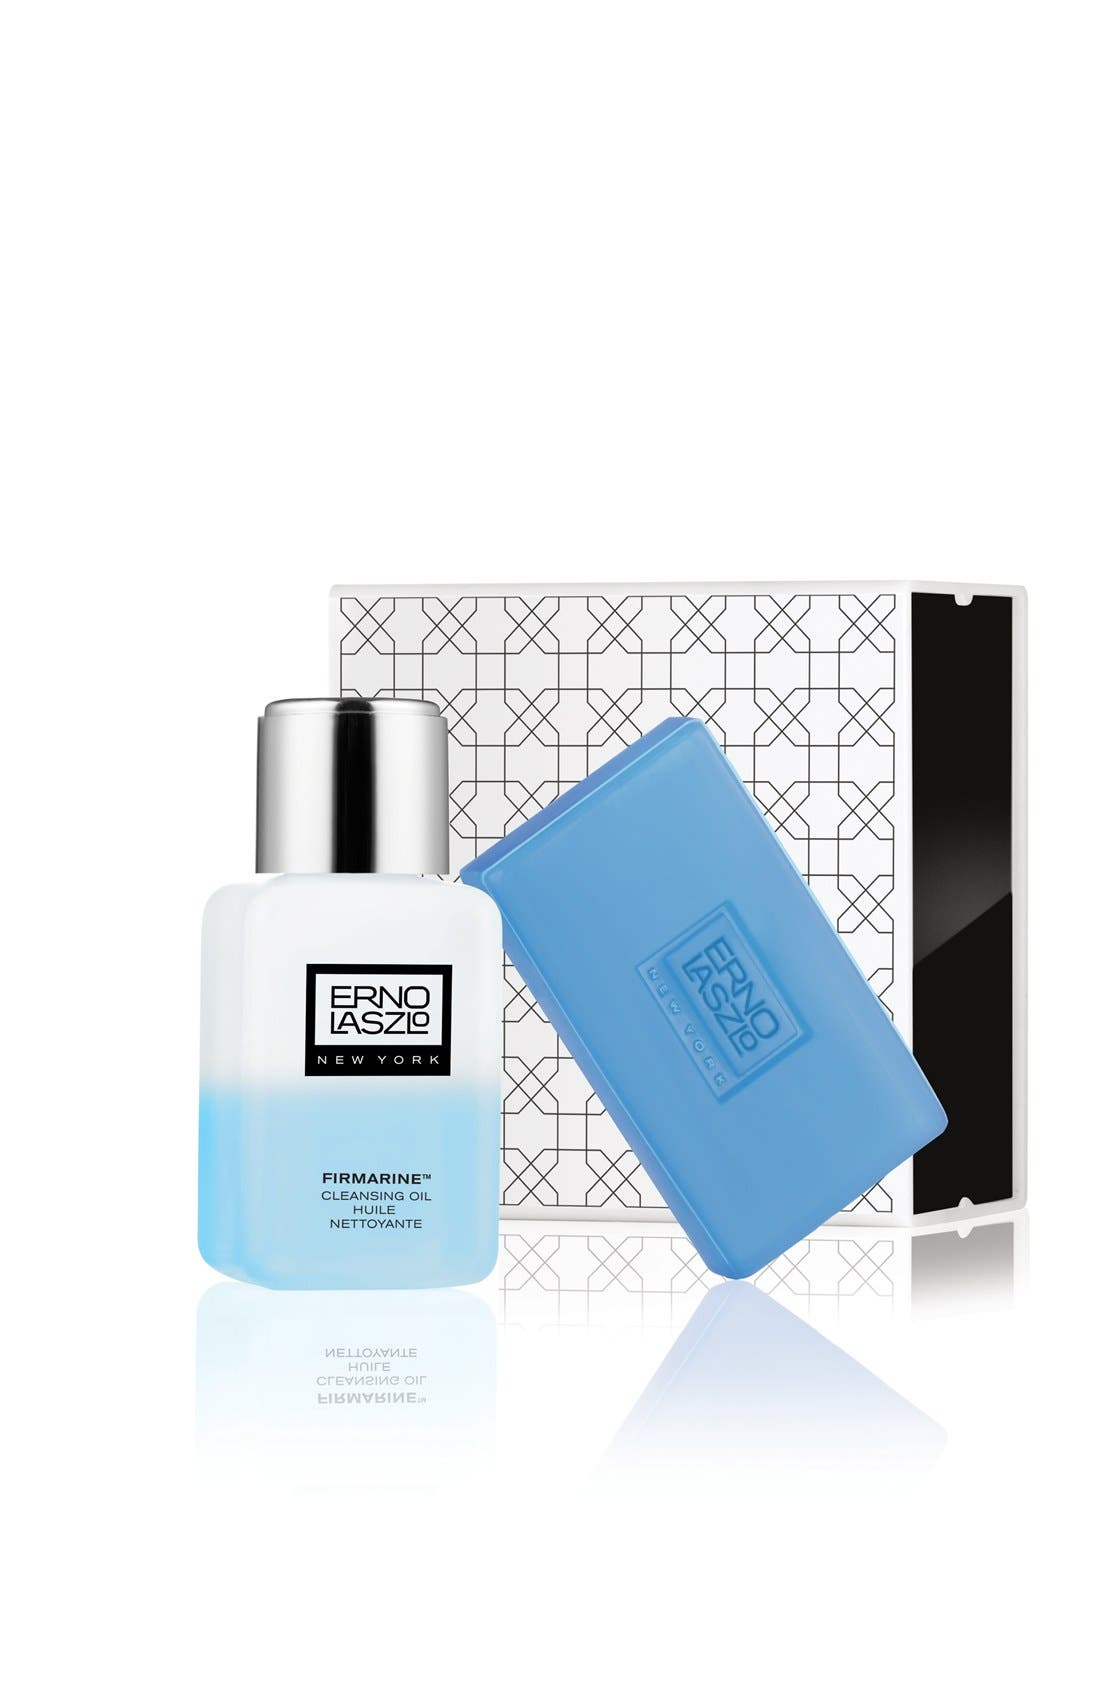 ERNO LASZLO Firmarine<sup>™</sup> Double Cleanse Travel Set, Main, color, NO COLOR